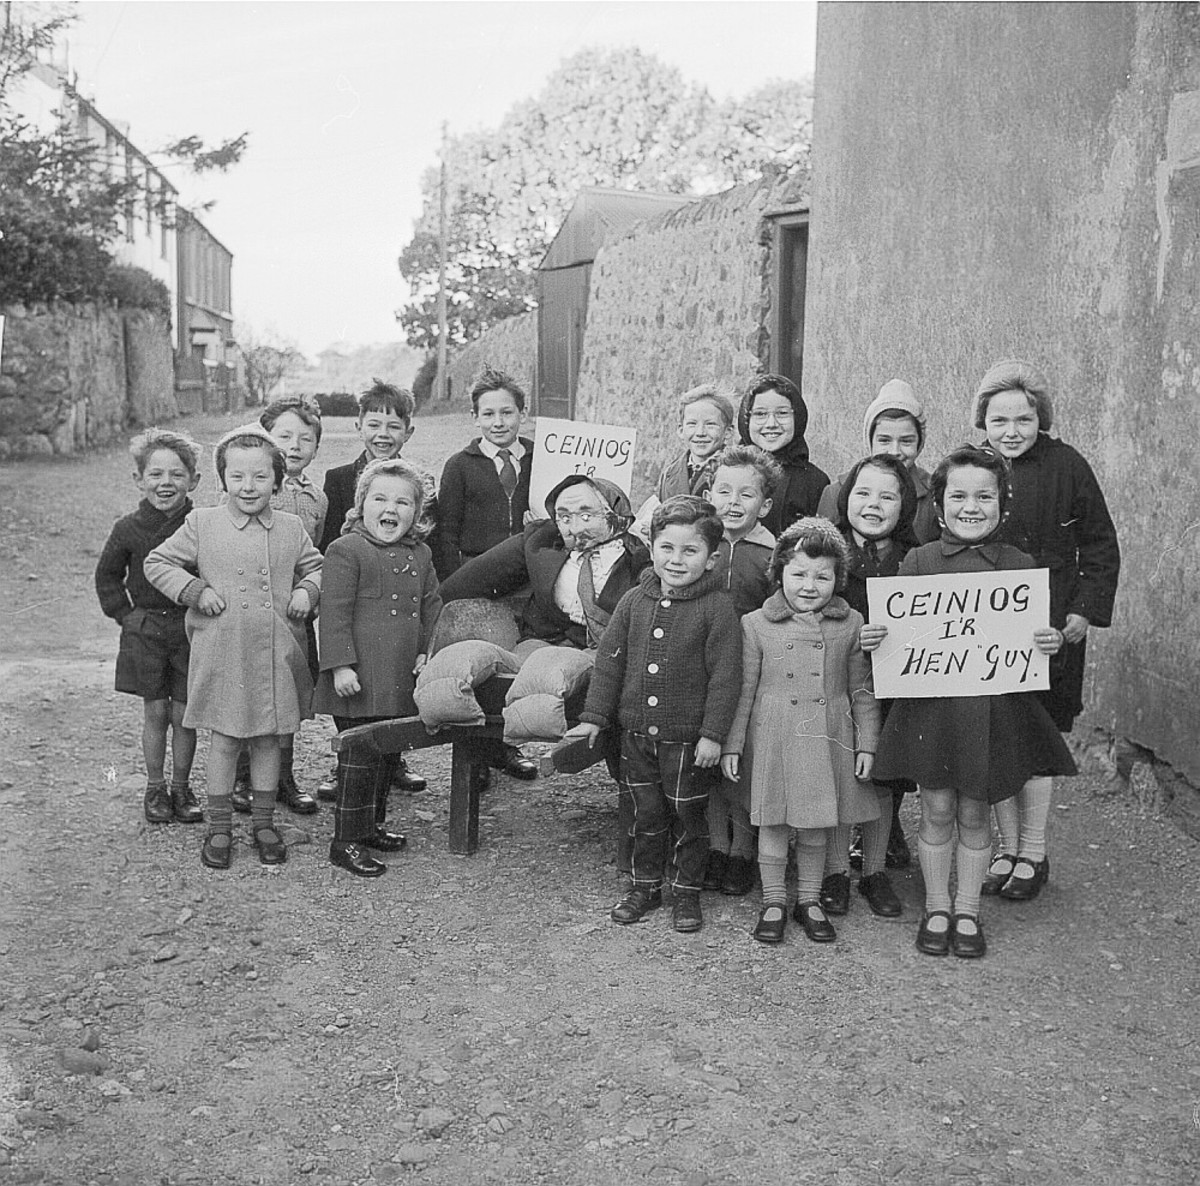 Children in Wales ask for a penny for the guy in 1962.